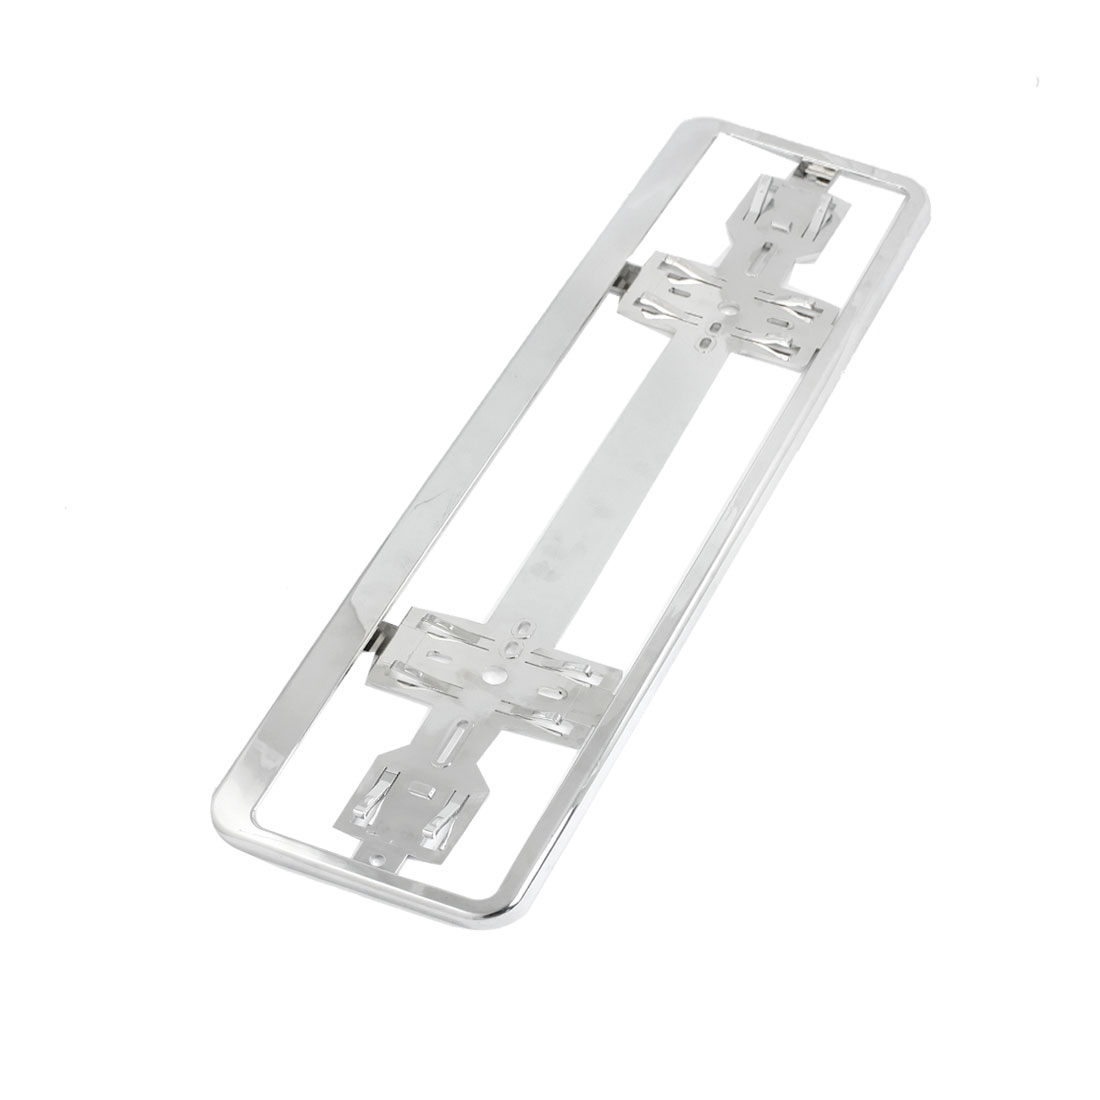 Silver Tone Number Plate Plastic Holder Bracket for Car Auto